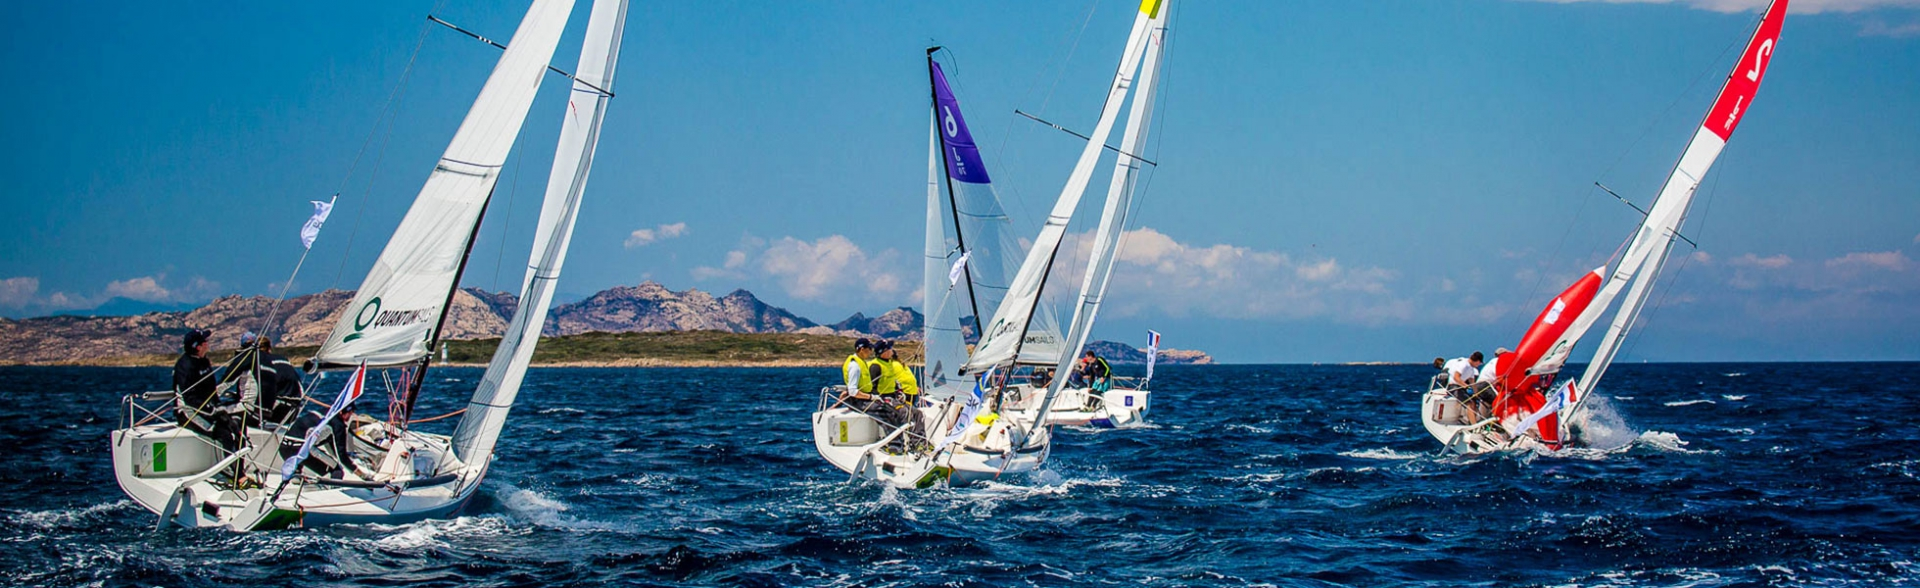 Sailing Champions League - Porto Cervo 2020